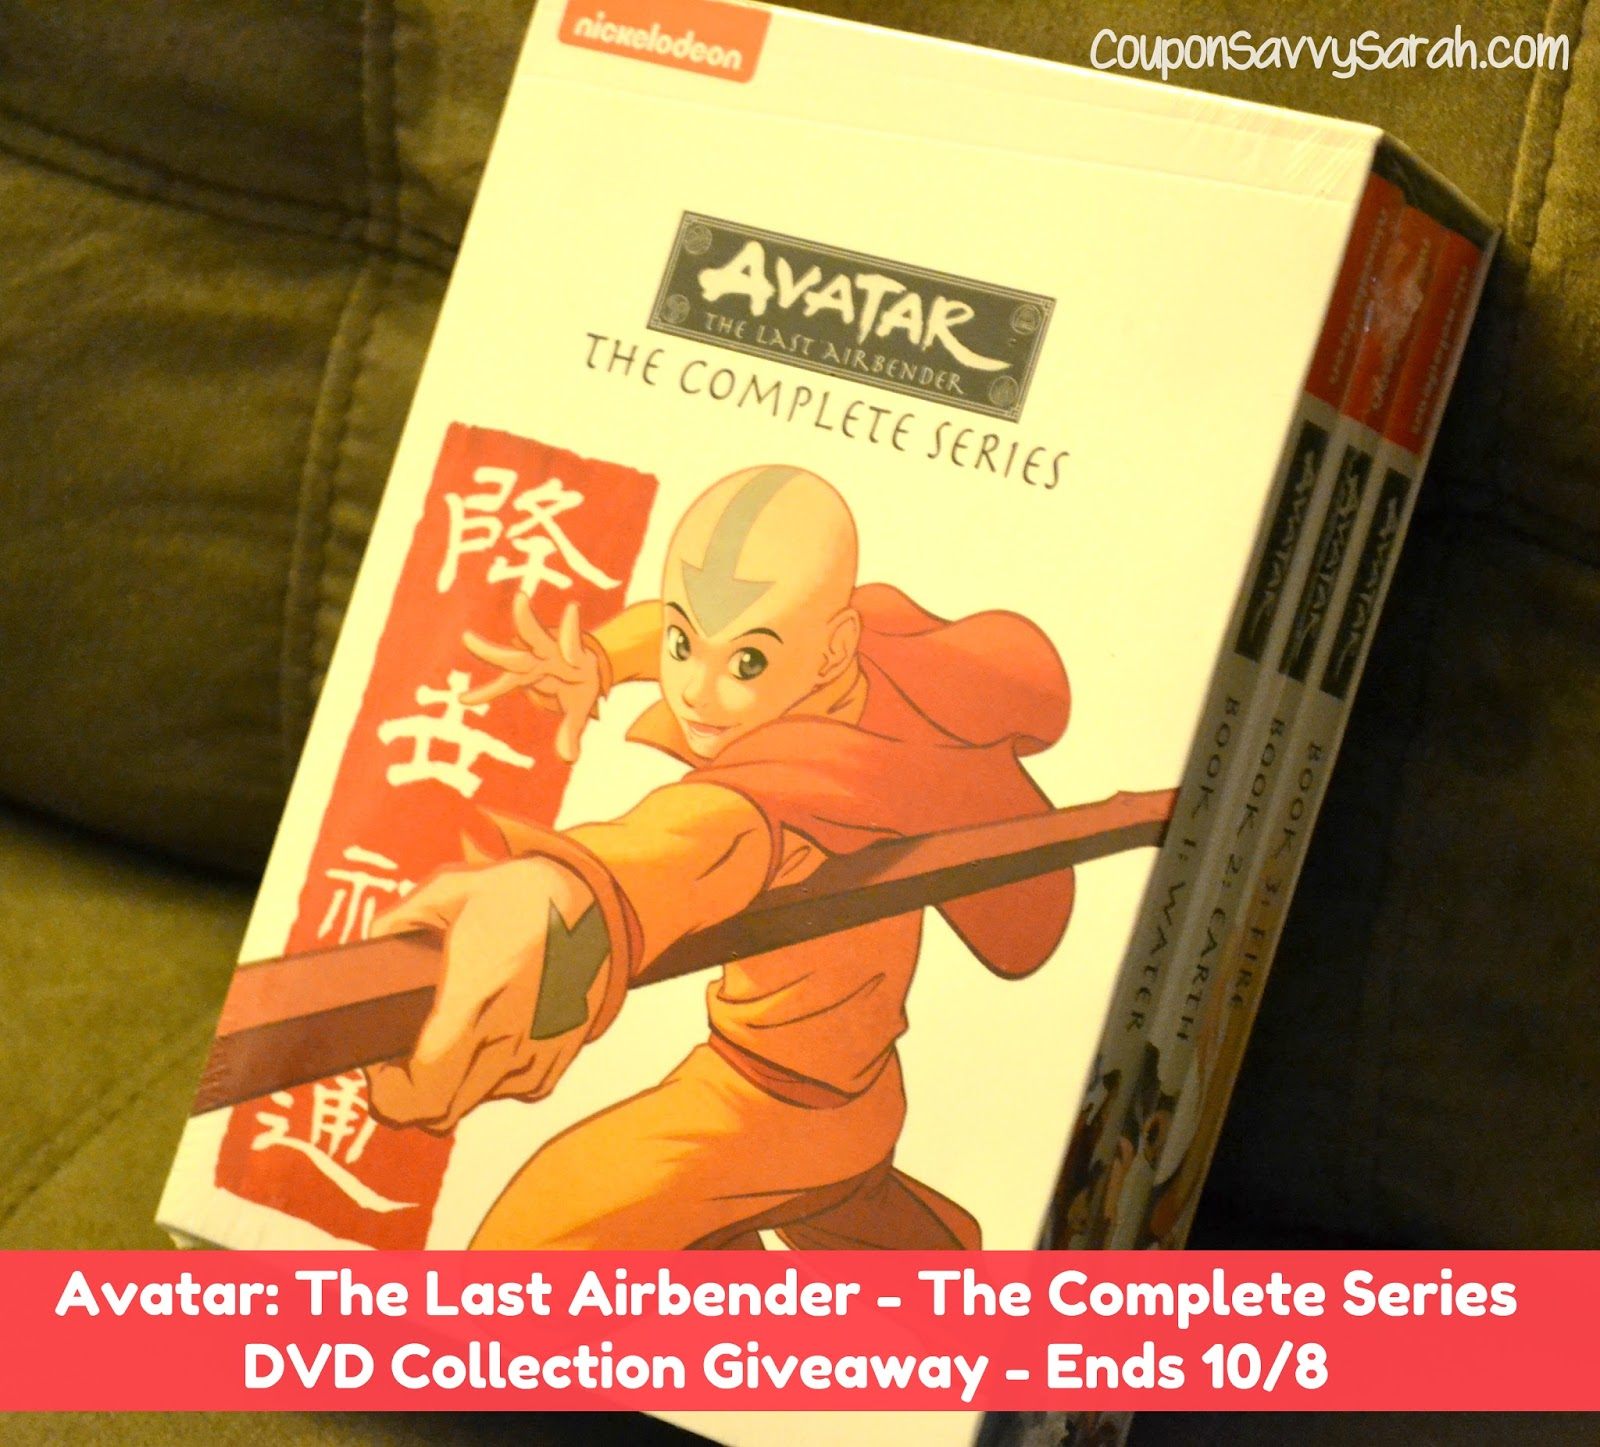 Avatar 2 On Dvd: Coupon Savvy Sarah: Nightly Giveaway Round-Up From Coupon